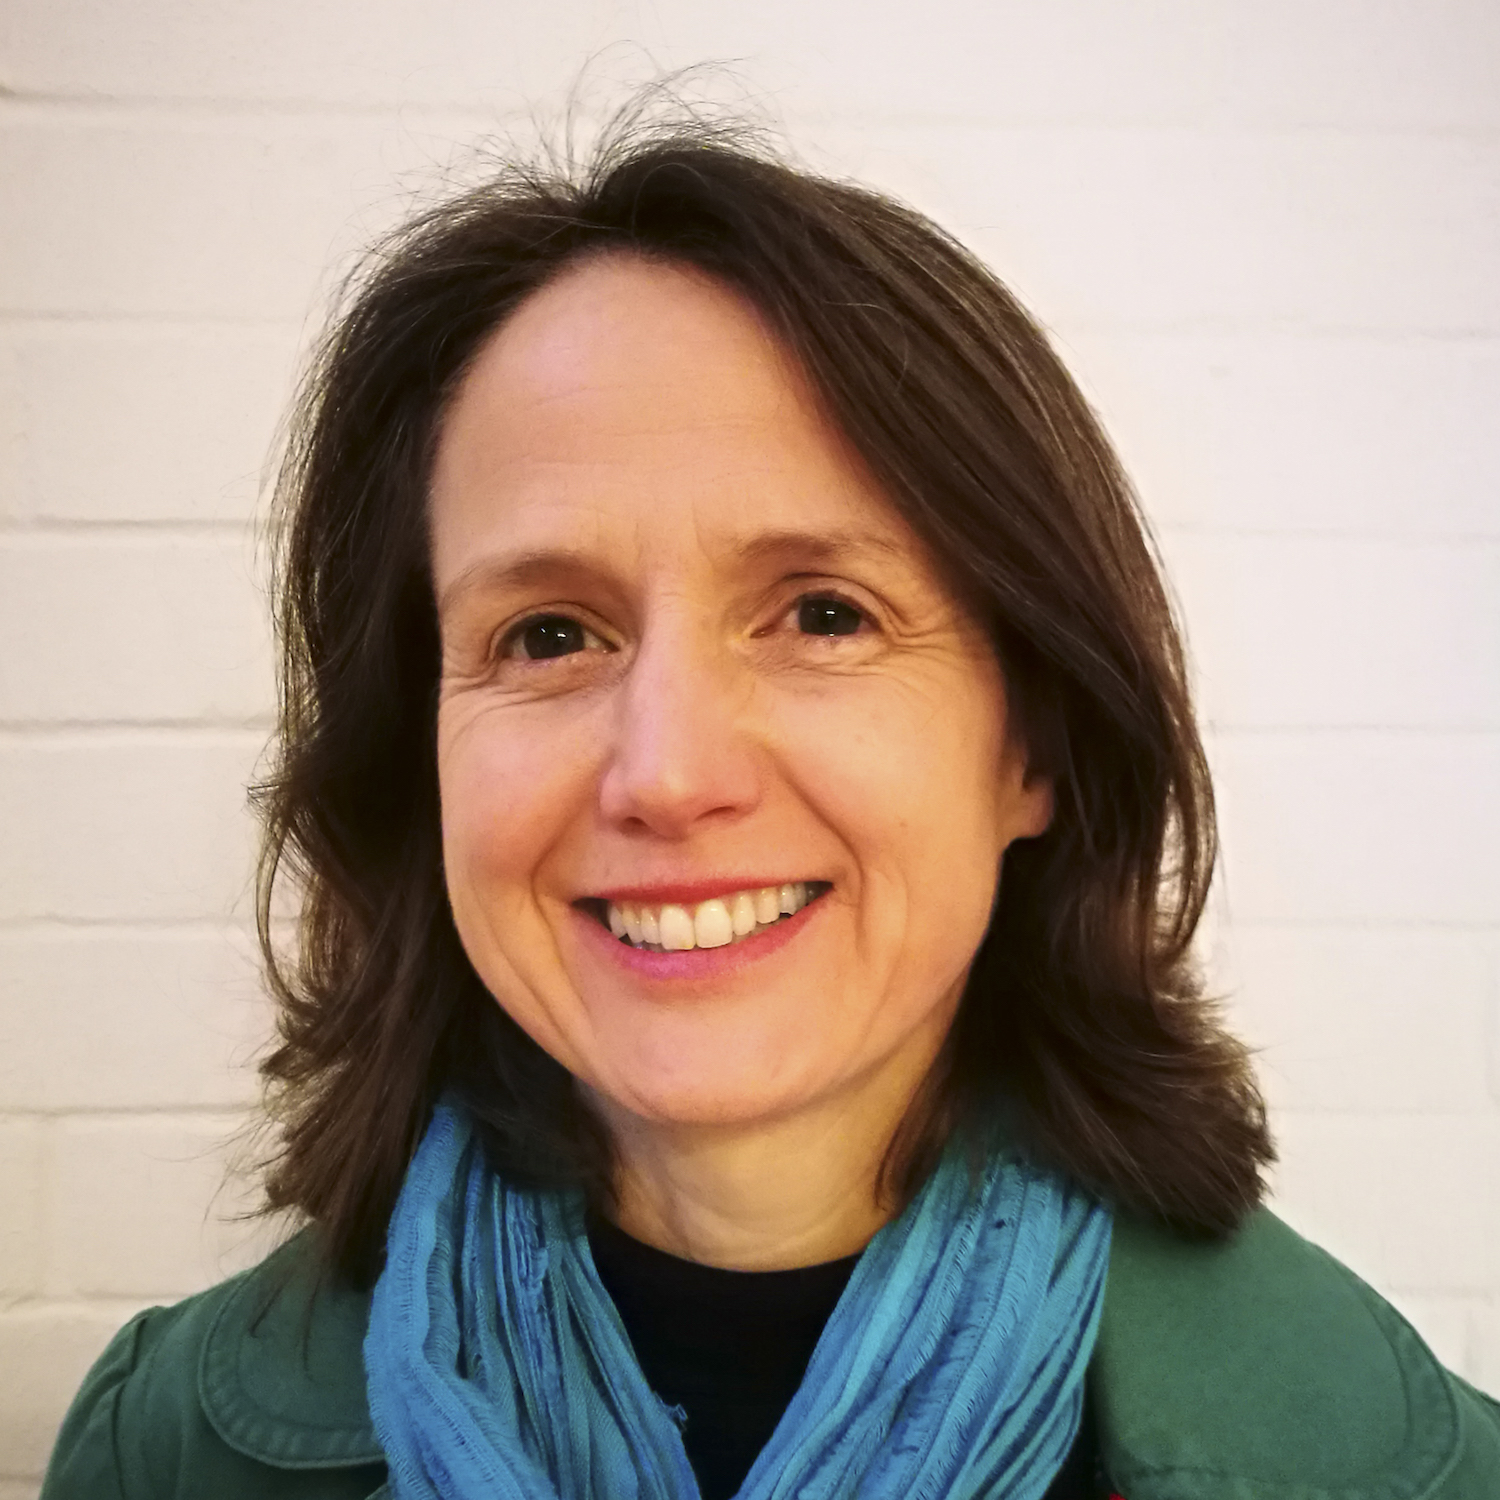 Lucy Thom - CAOS-trained Mediator and Conflict Coach